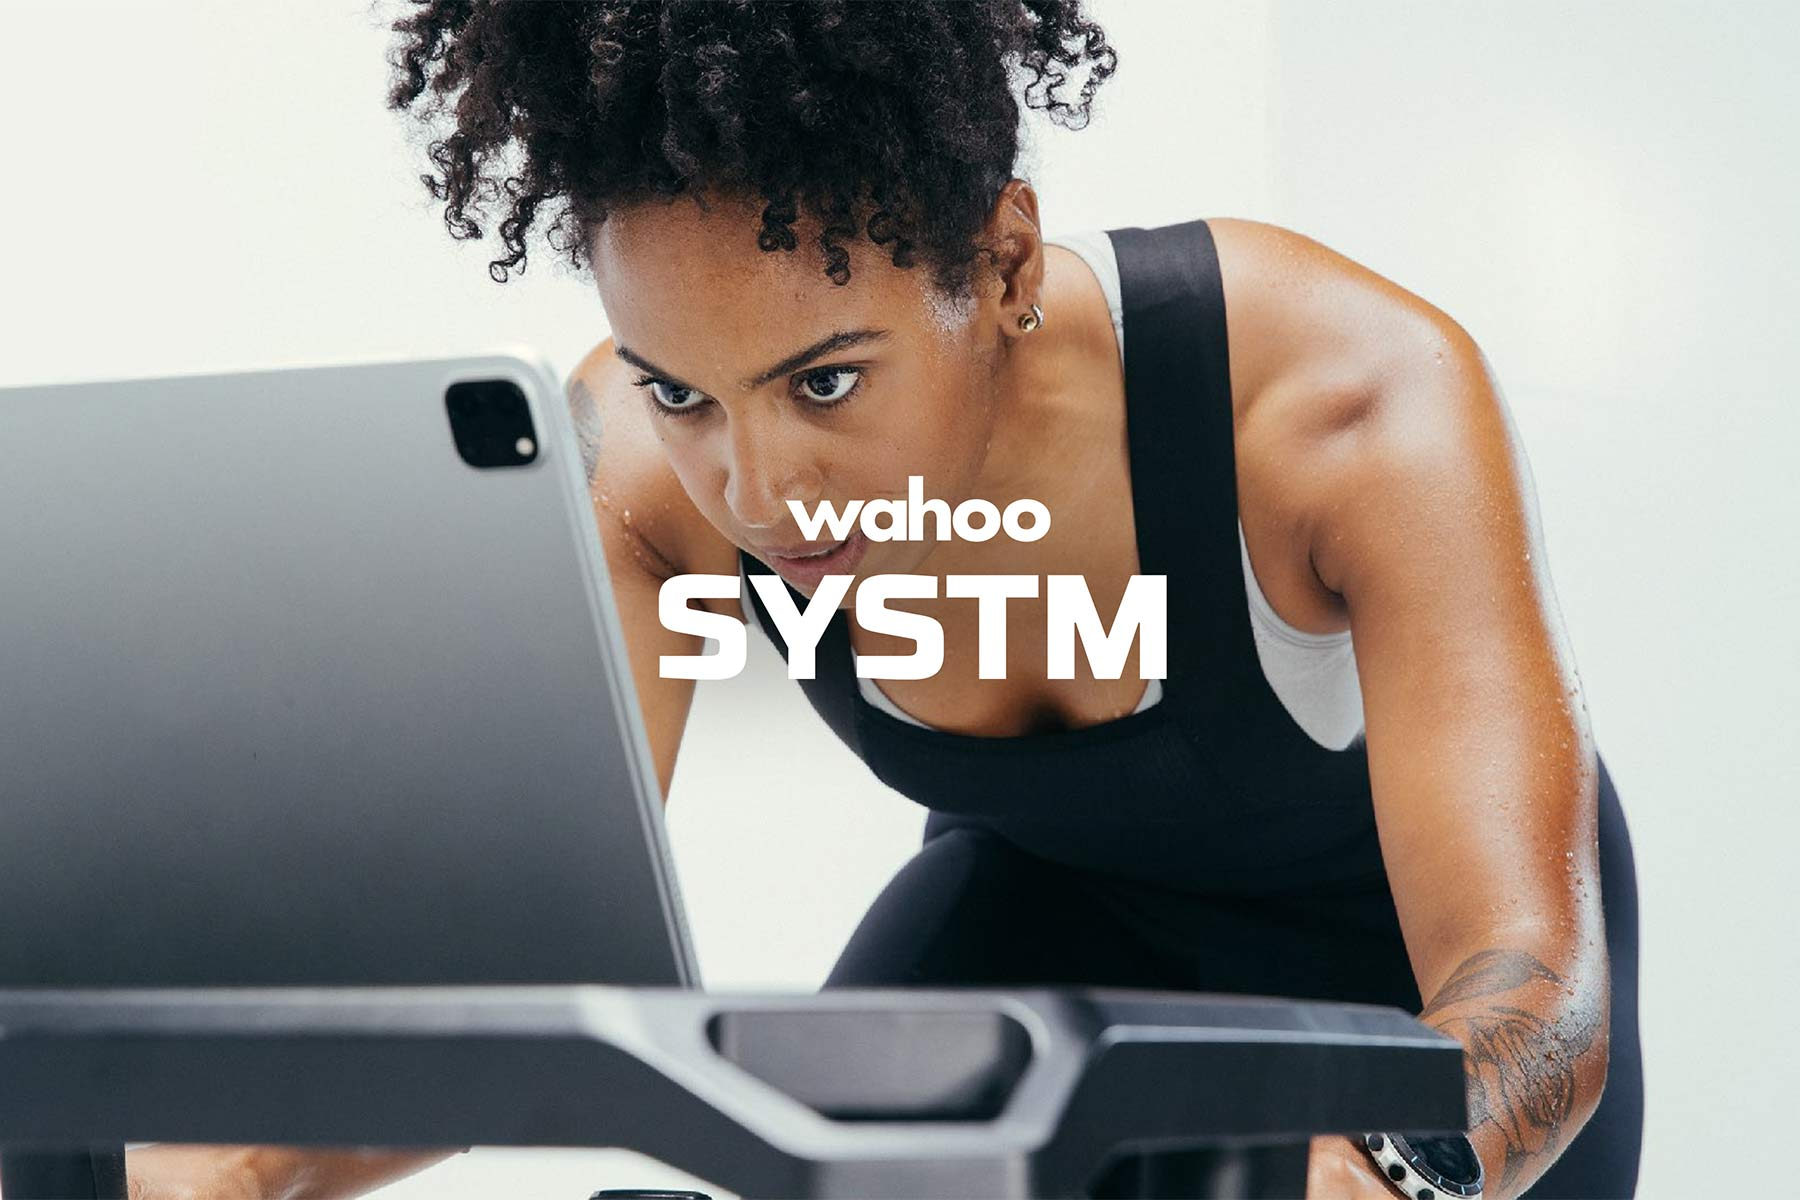 Wahoo Systm cycling structured training app, based on The Sufferfest